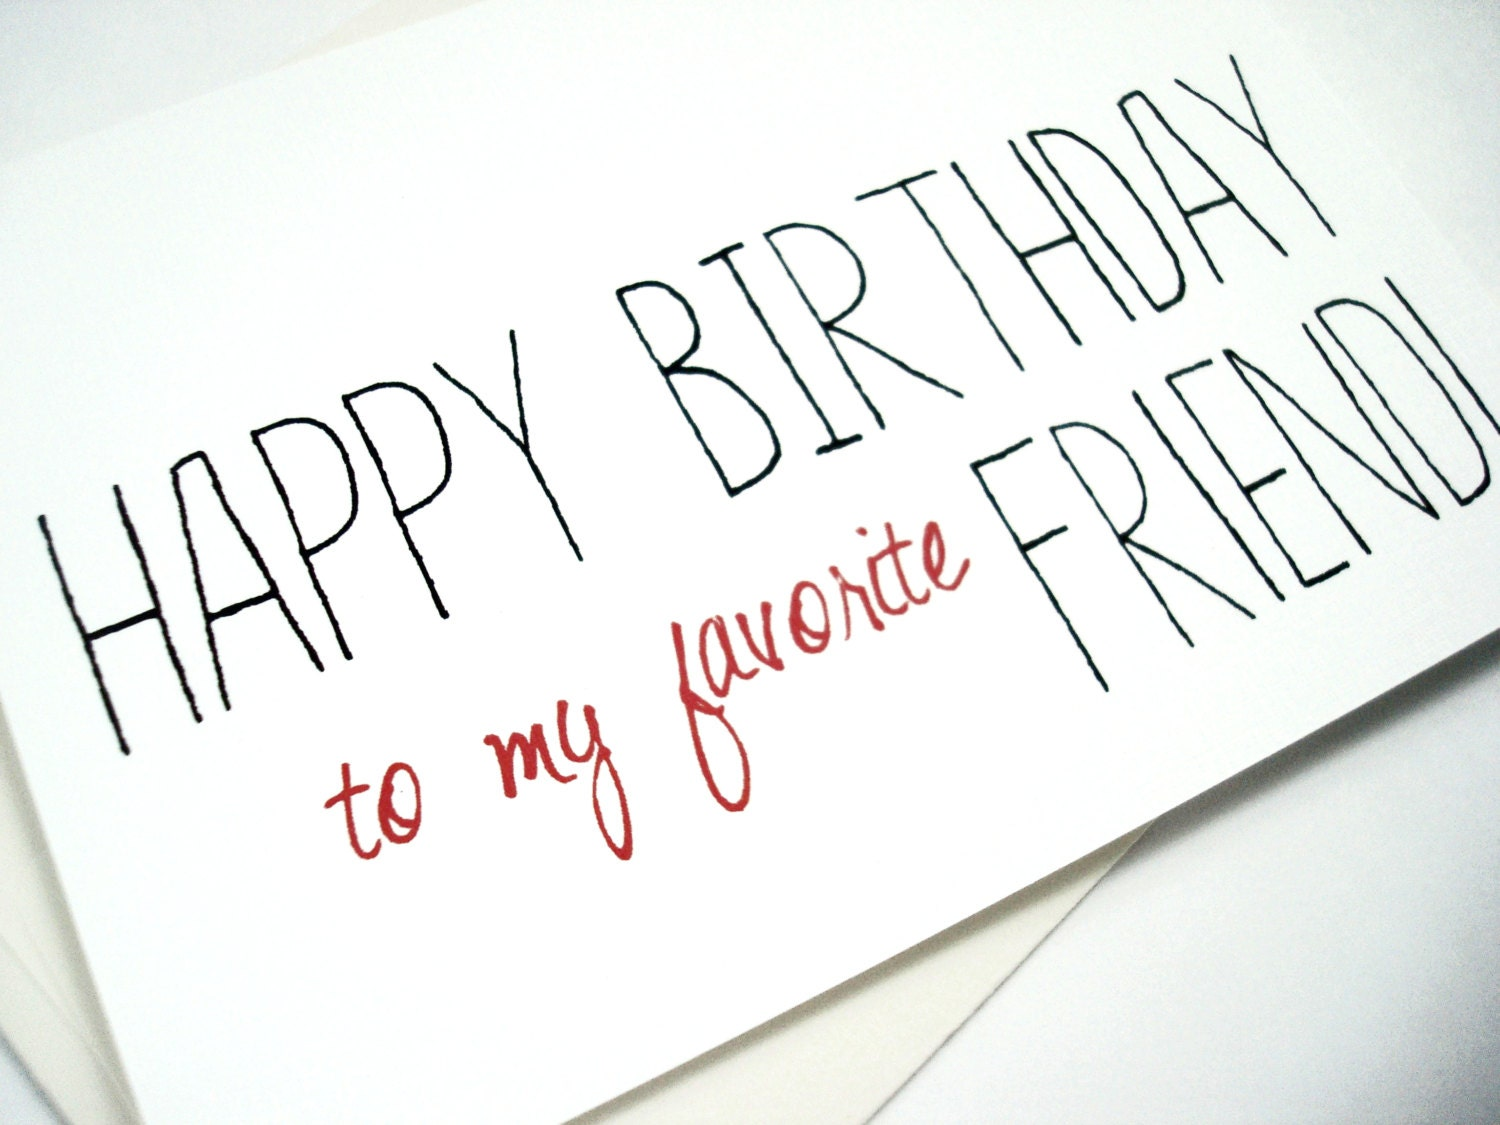 Male Friend Happy birthday